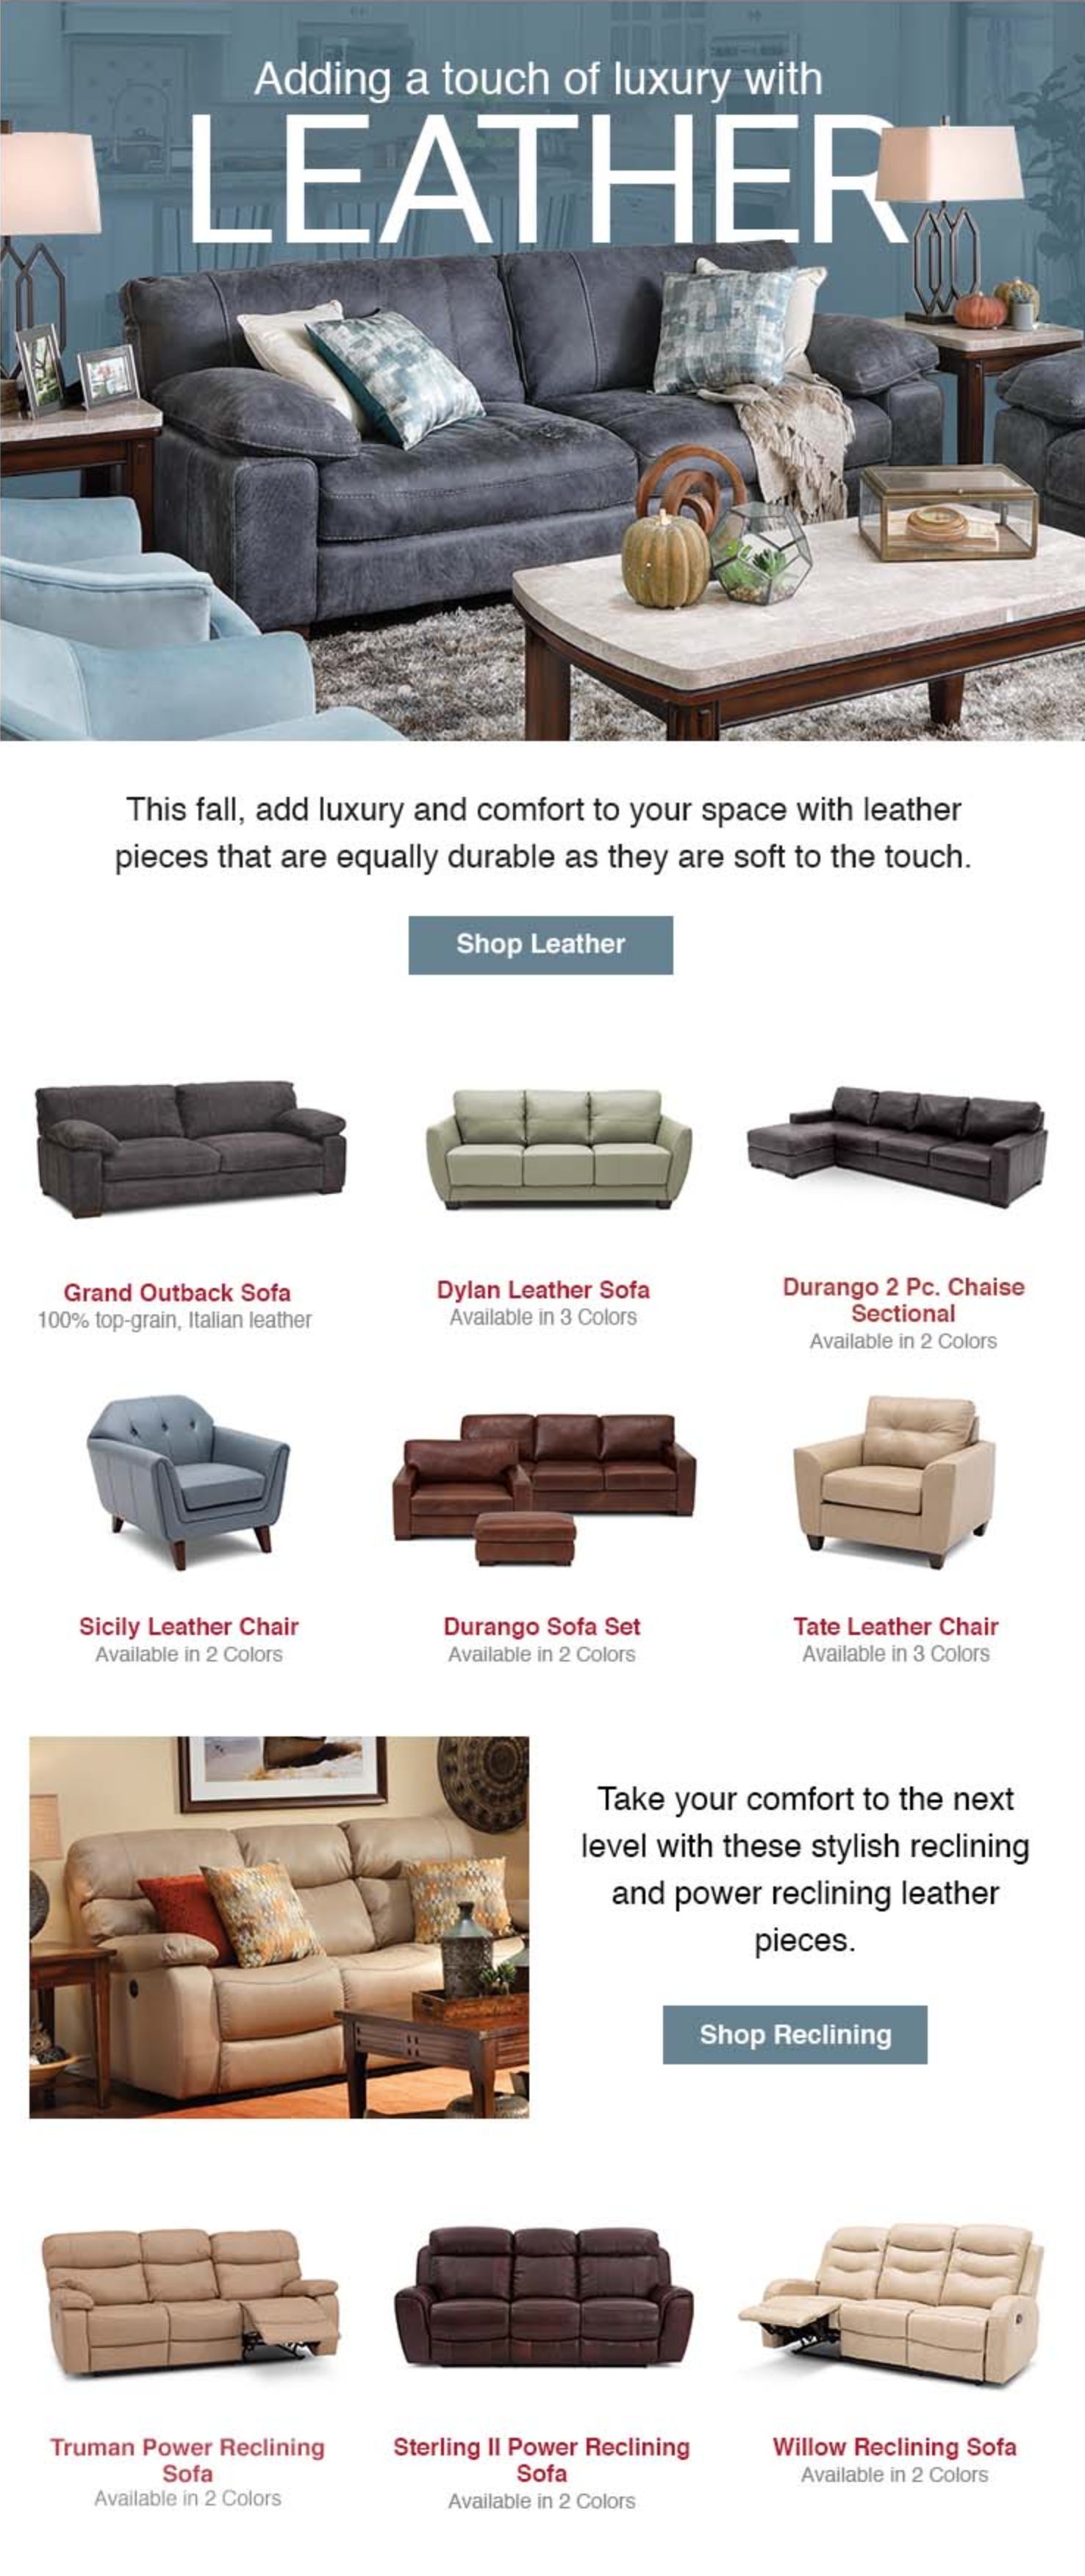 Leather Adds A Touch Of Luxury To Any Living Room From Sofas To Sectionals And Chairs Furniture Row H Rowe Furniture Living Room Pieces Living Room Furniture